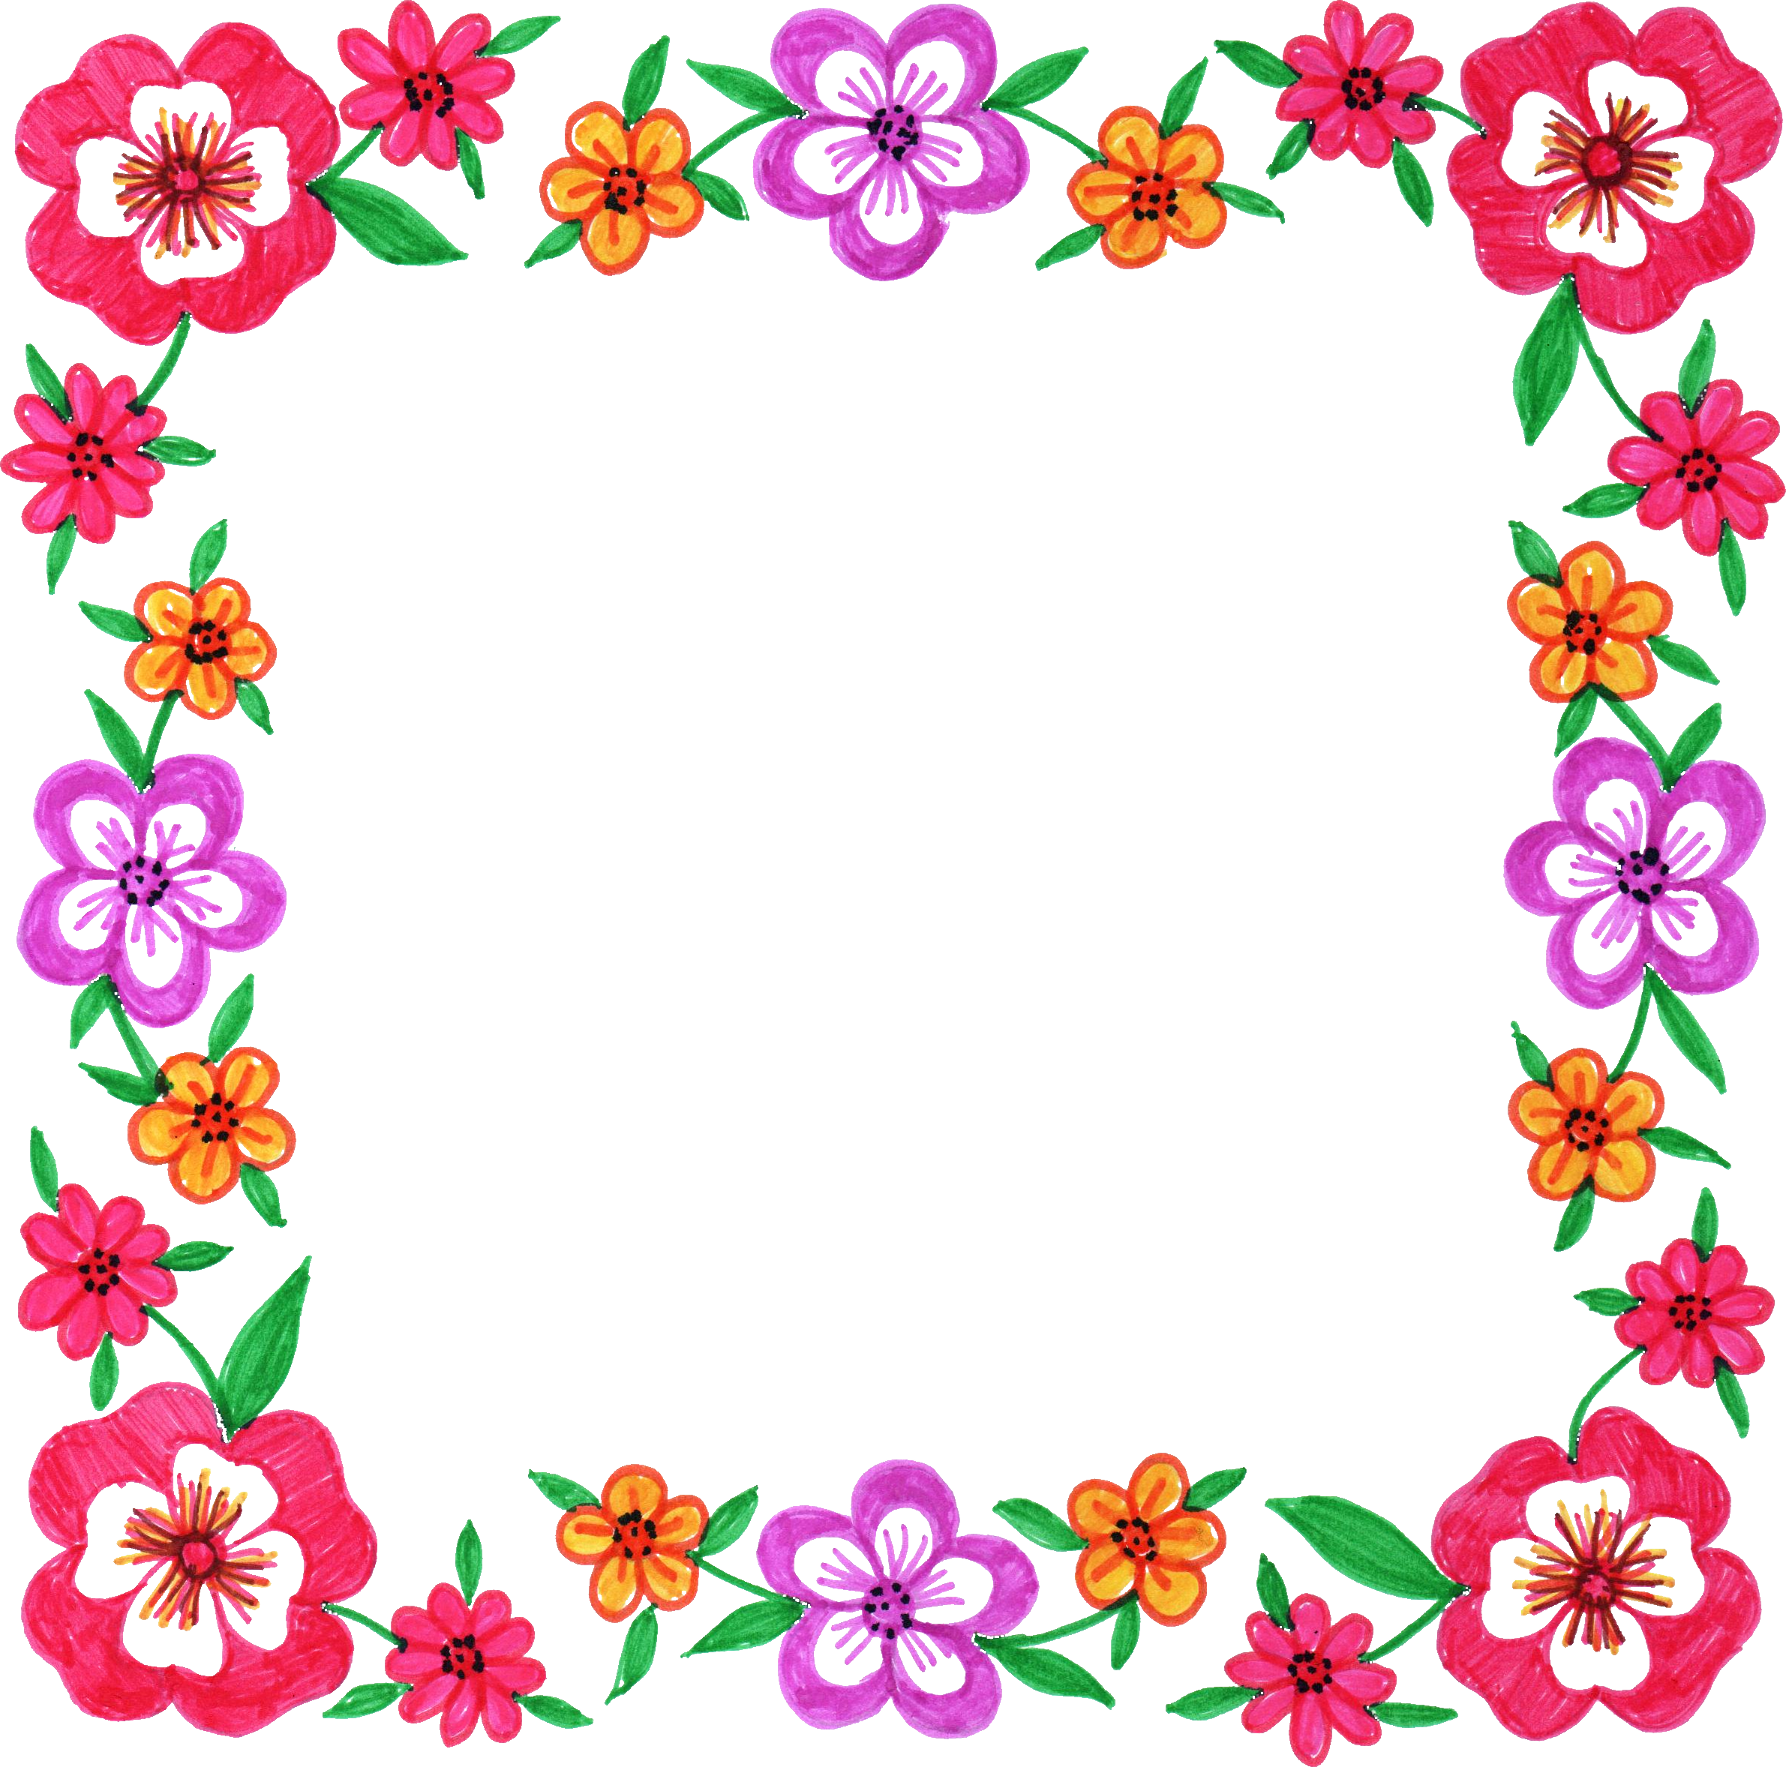 Square Clipart Colored Square  Square Colored Square